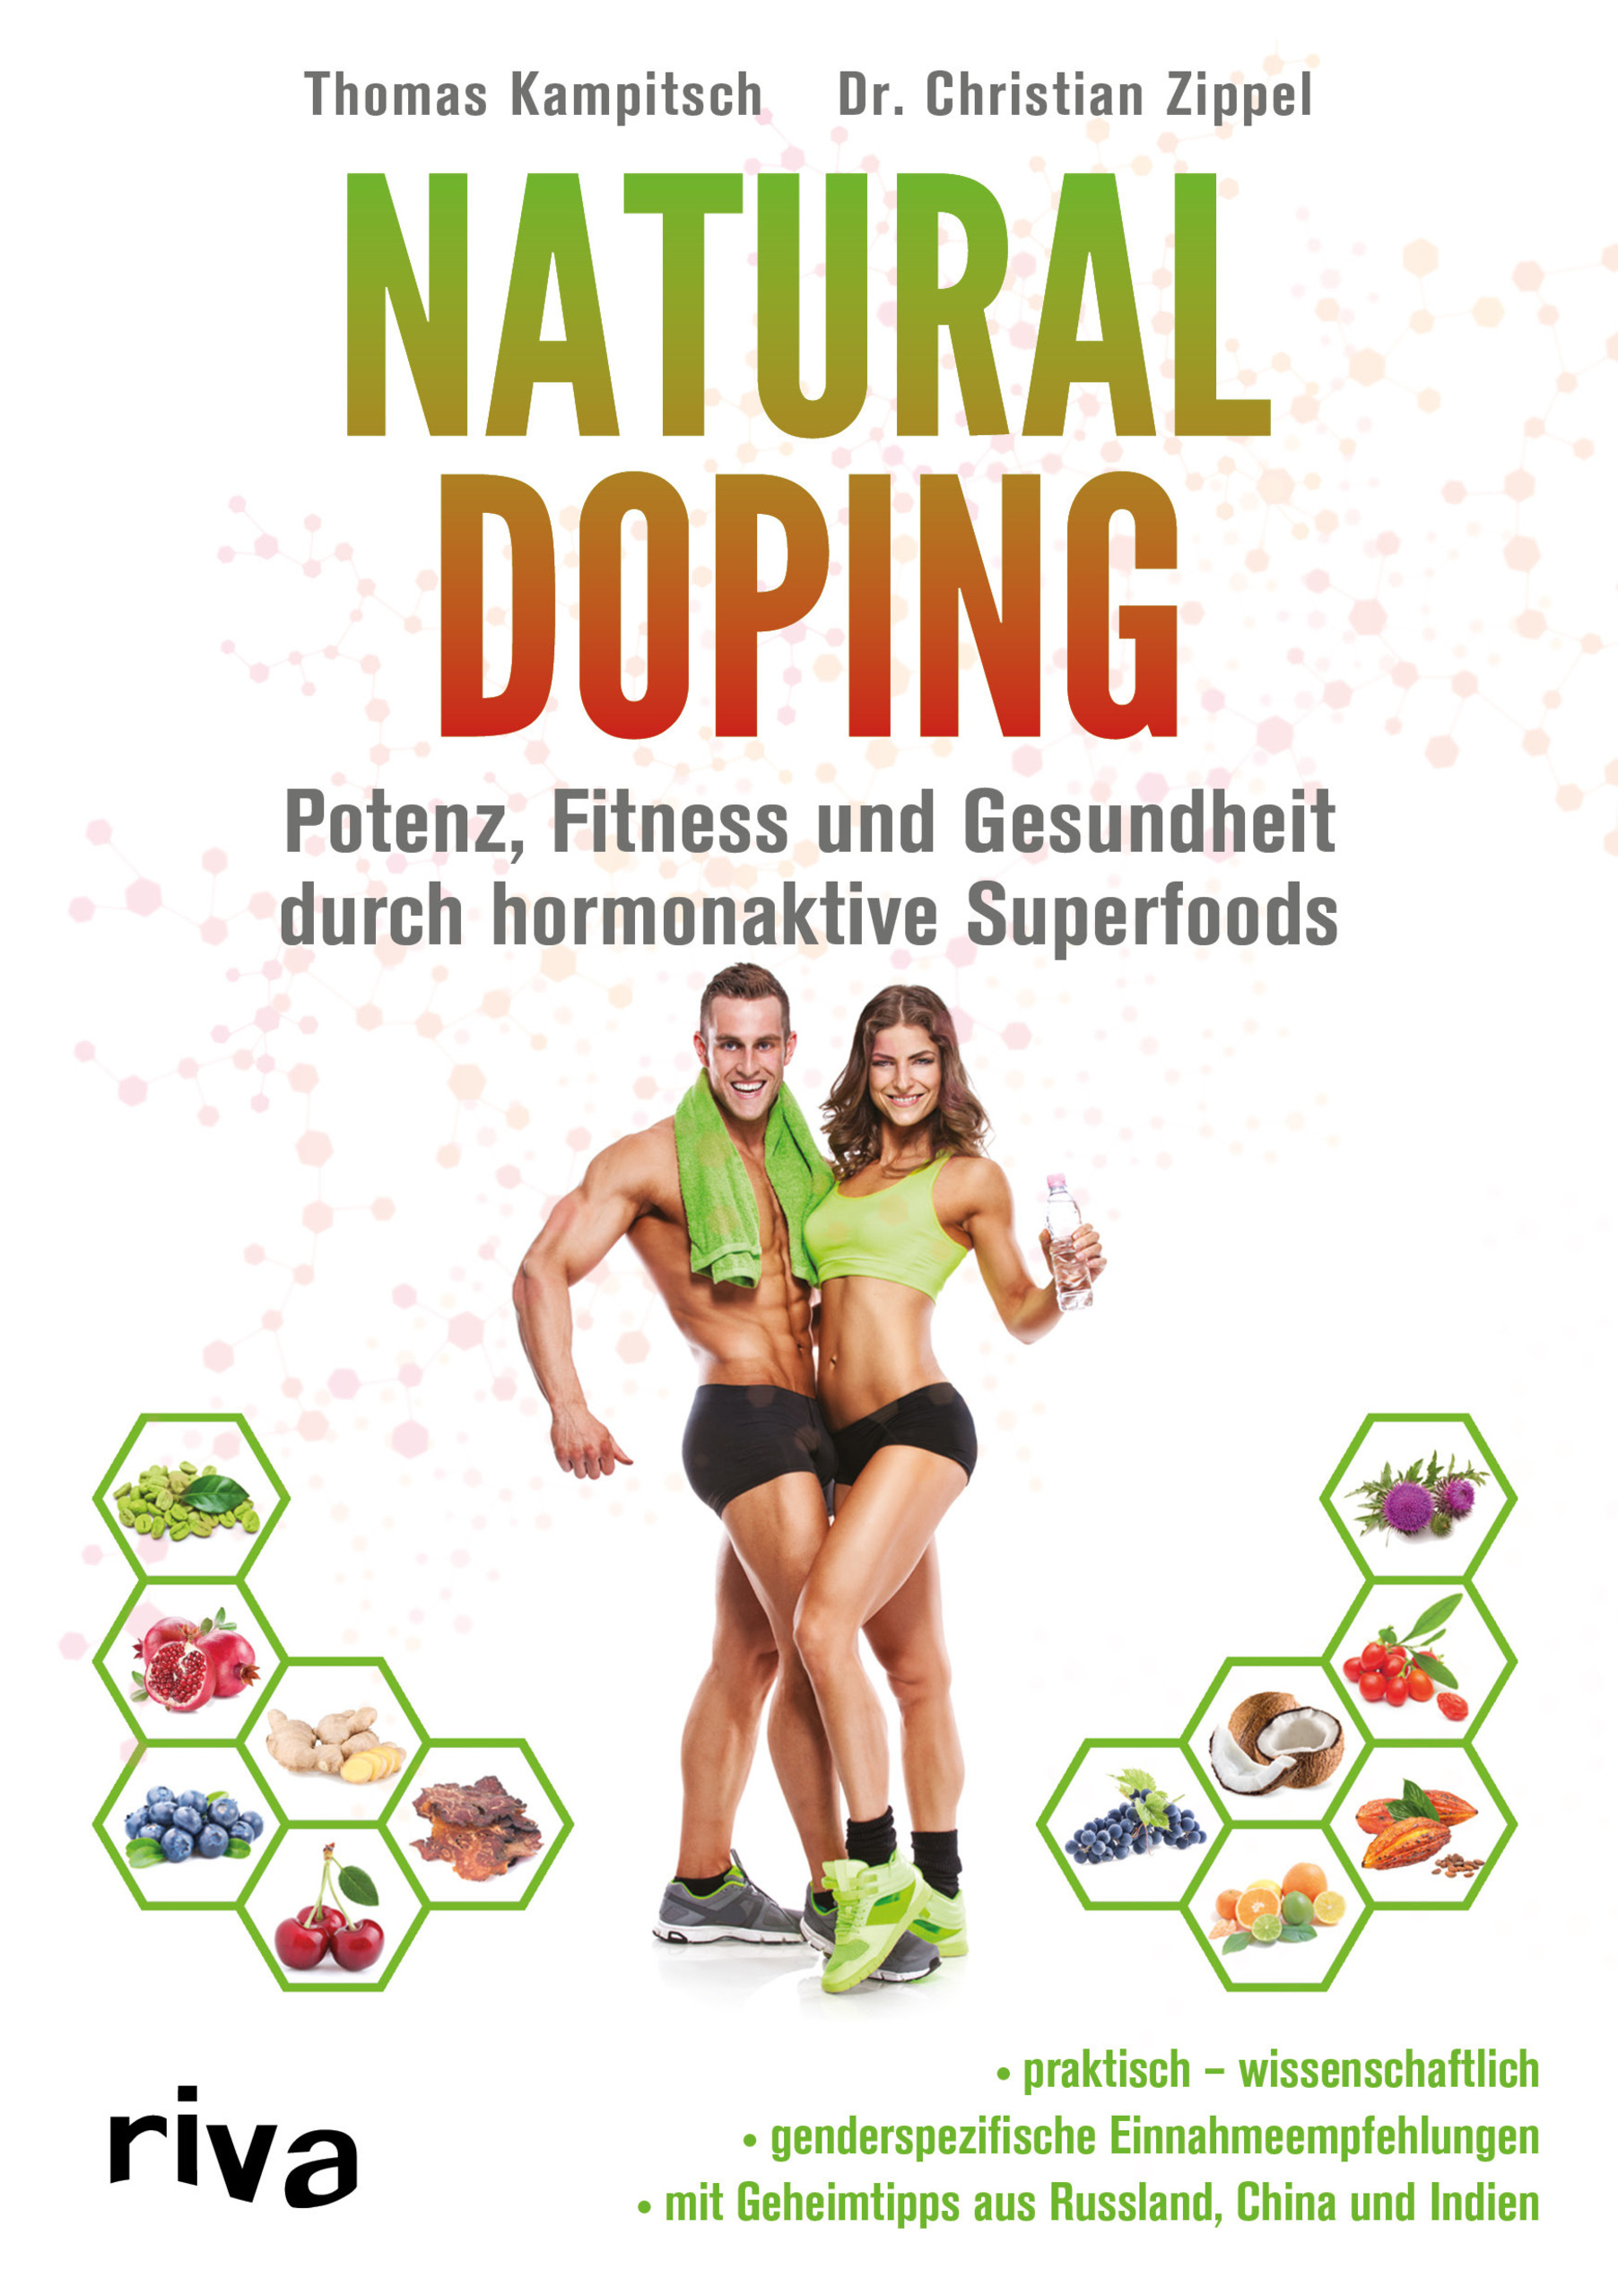 Natural Doping - C. Zippel - Buch Image